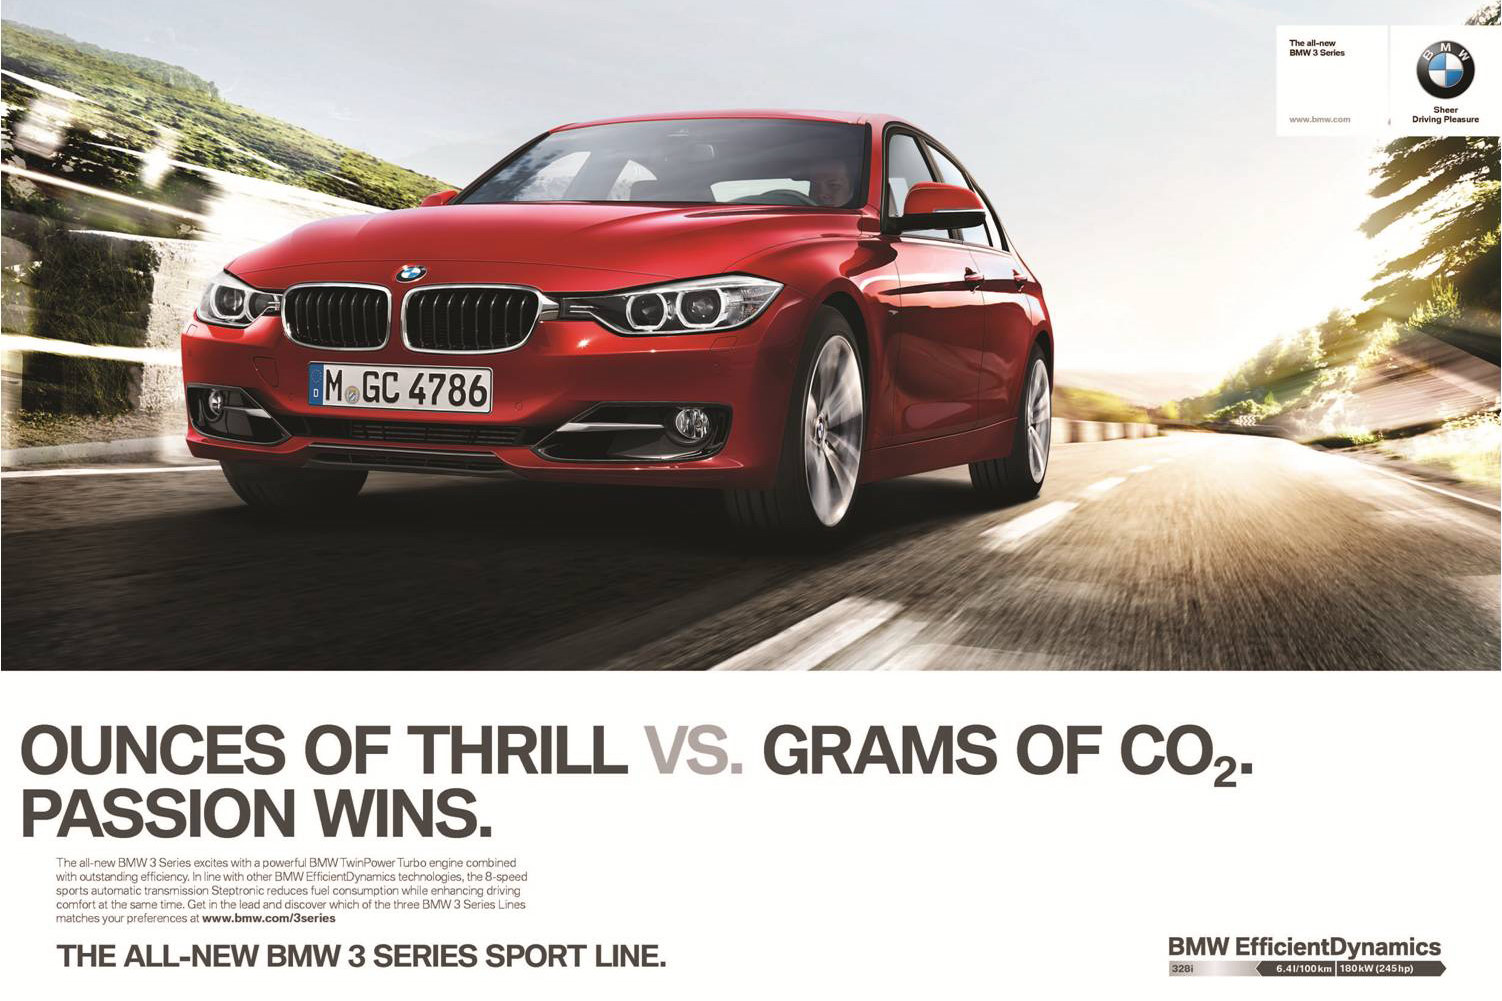 2012-bmw-3-series-f30-marketing-campaign-passion-wins_8.jpg